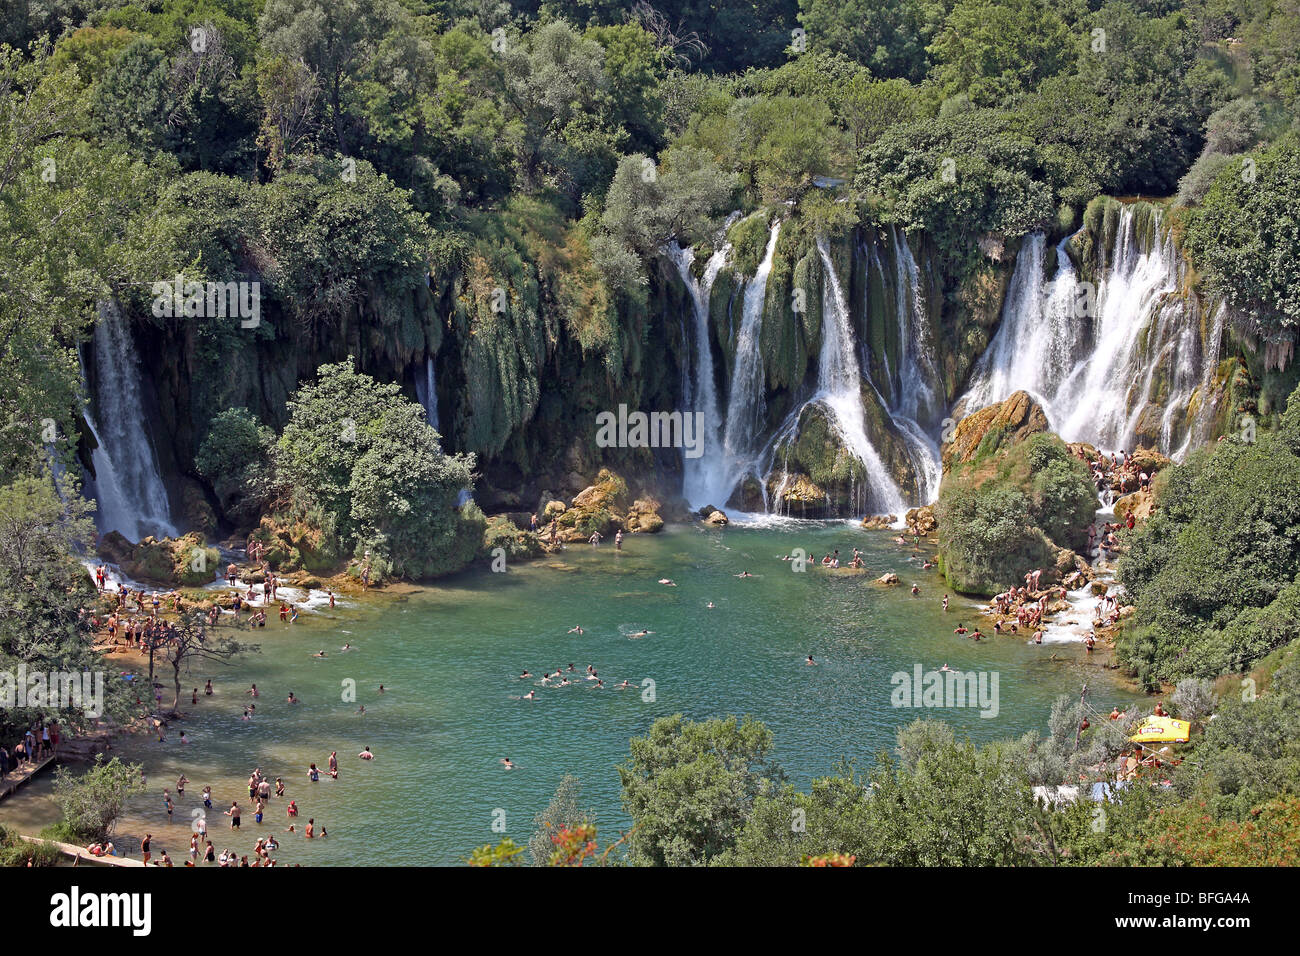 Bosnia and Herzegovina, Herzegovina Ljubuski district. Kravica Waterfalls on the Trebizat River with visiting tourists. Stock Photo